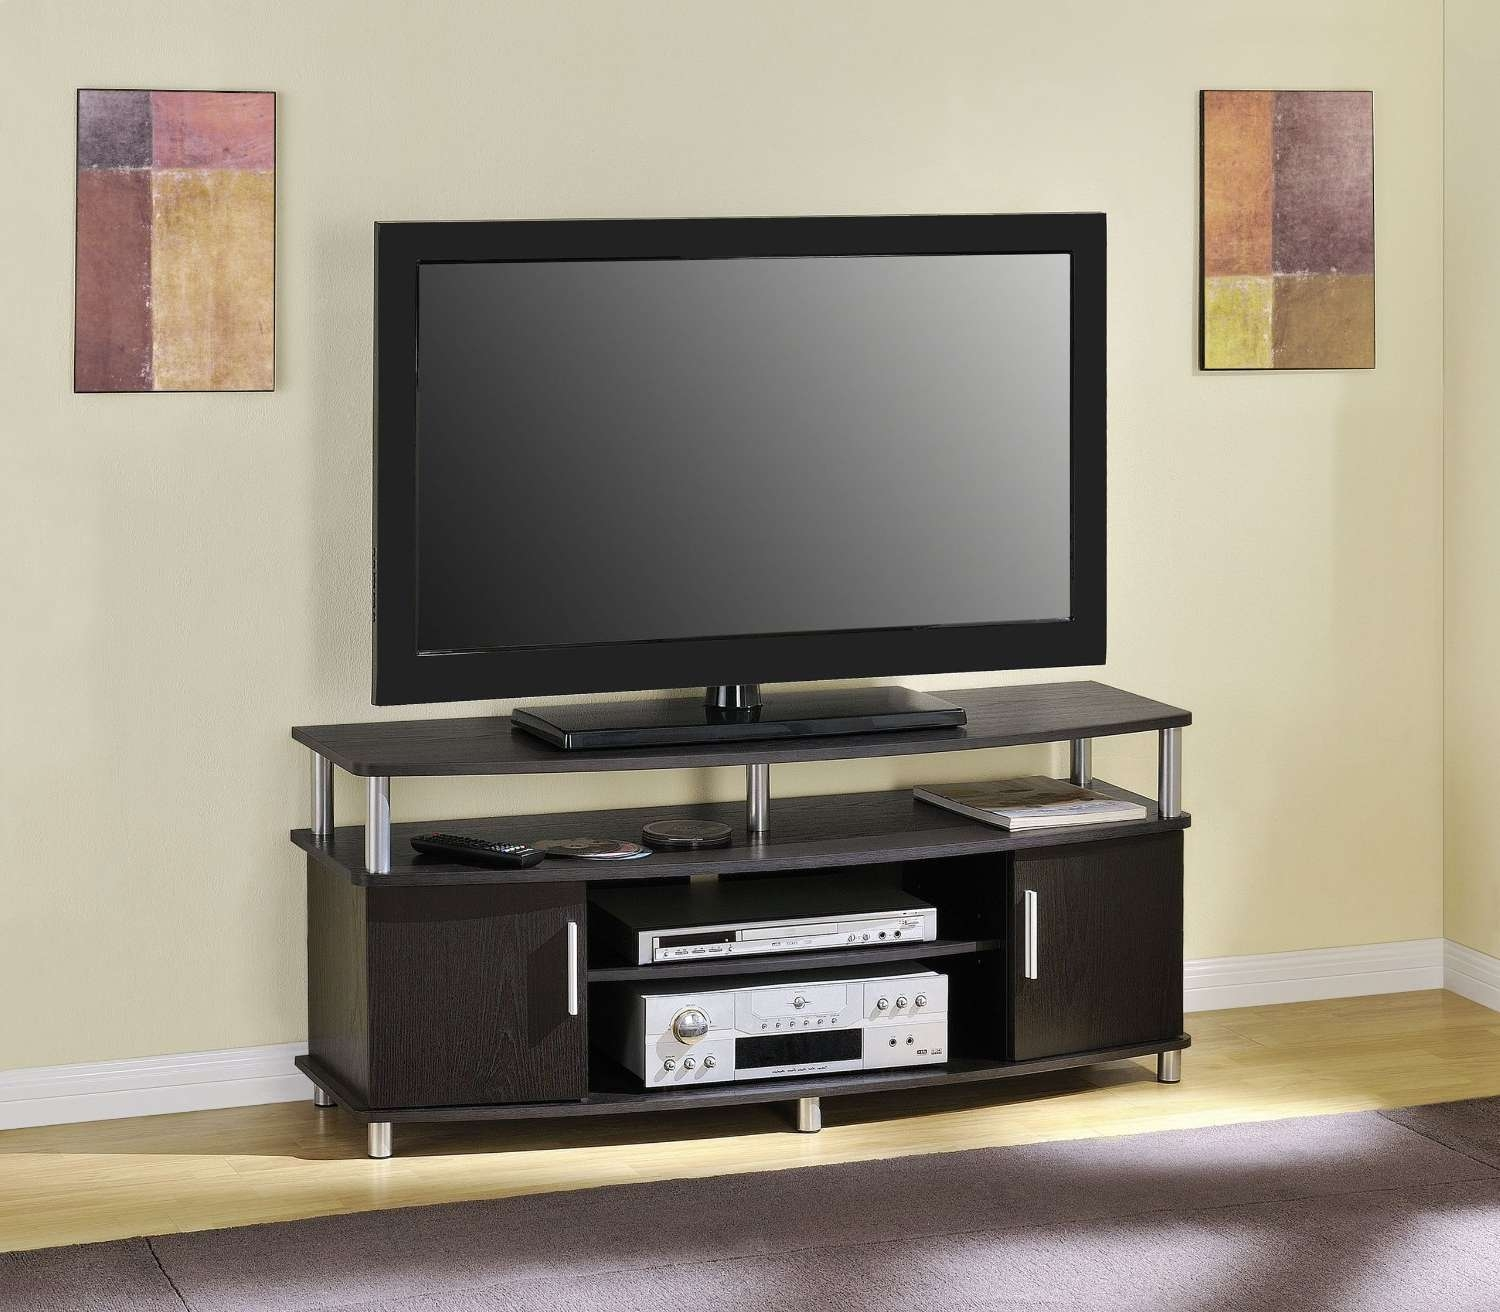 Tv Stands: 7 Best Selling Flat Screen Tv Stands 2017 Regarding Stand And Deliver Tv Stands (View 18 of 20)